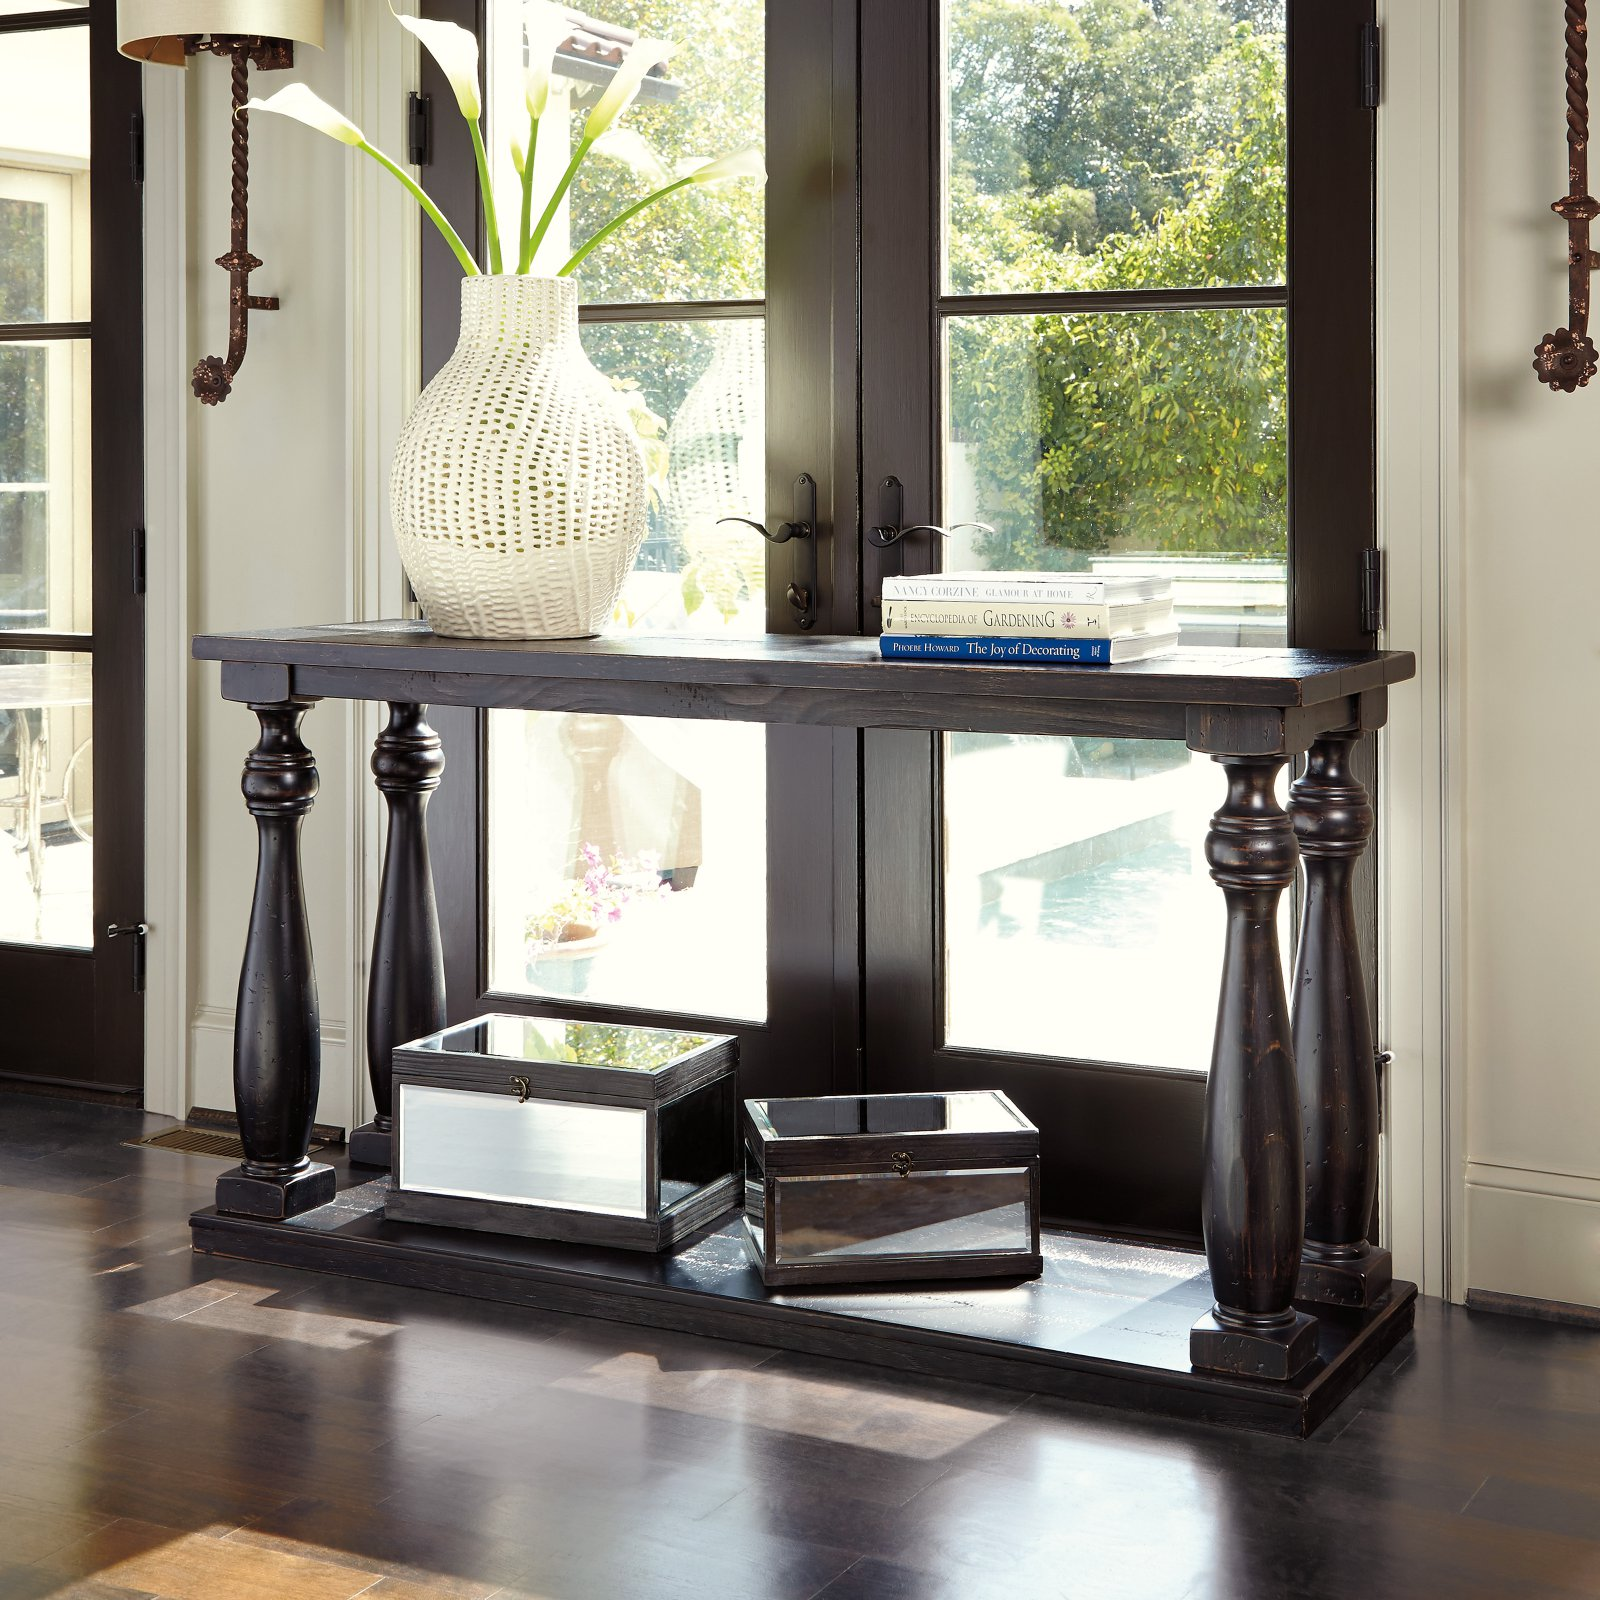 Signature Design by Ashley Mallacar Sofa Table Walmart